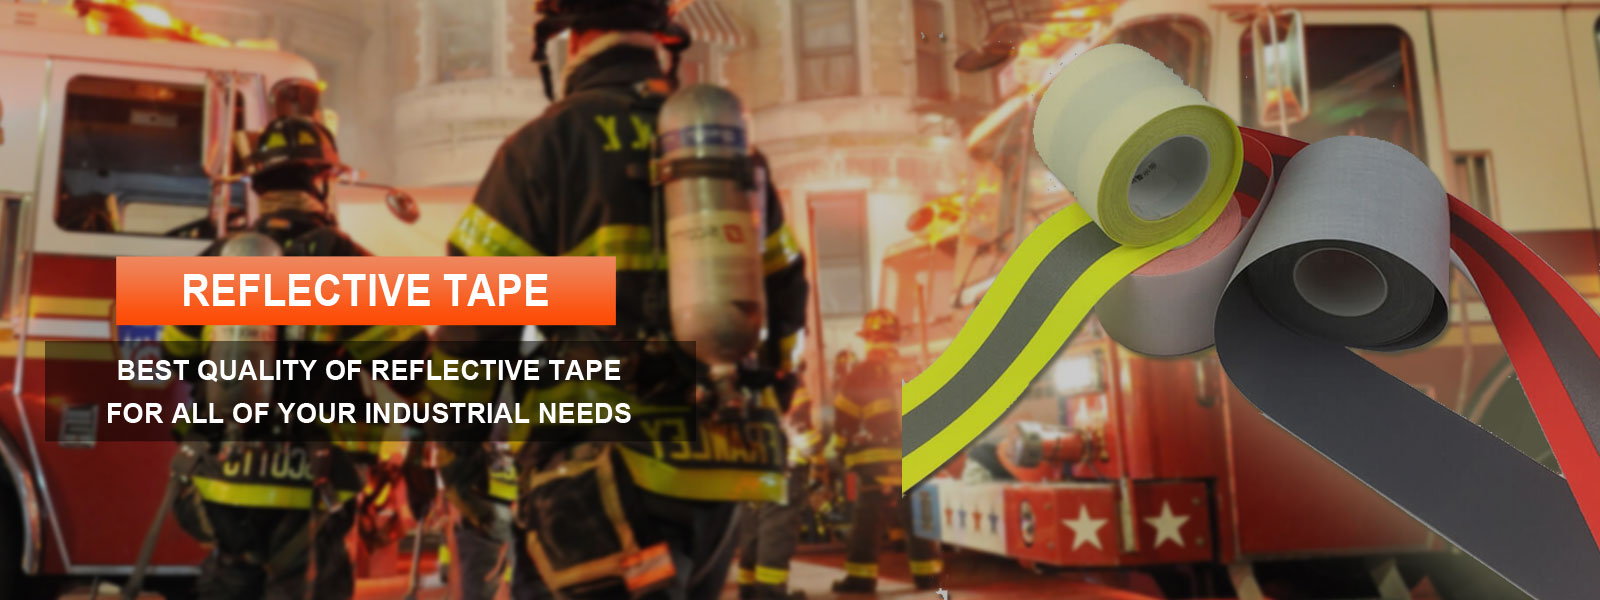 Reflective Tape Manufacturers in Sierra leone